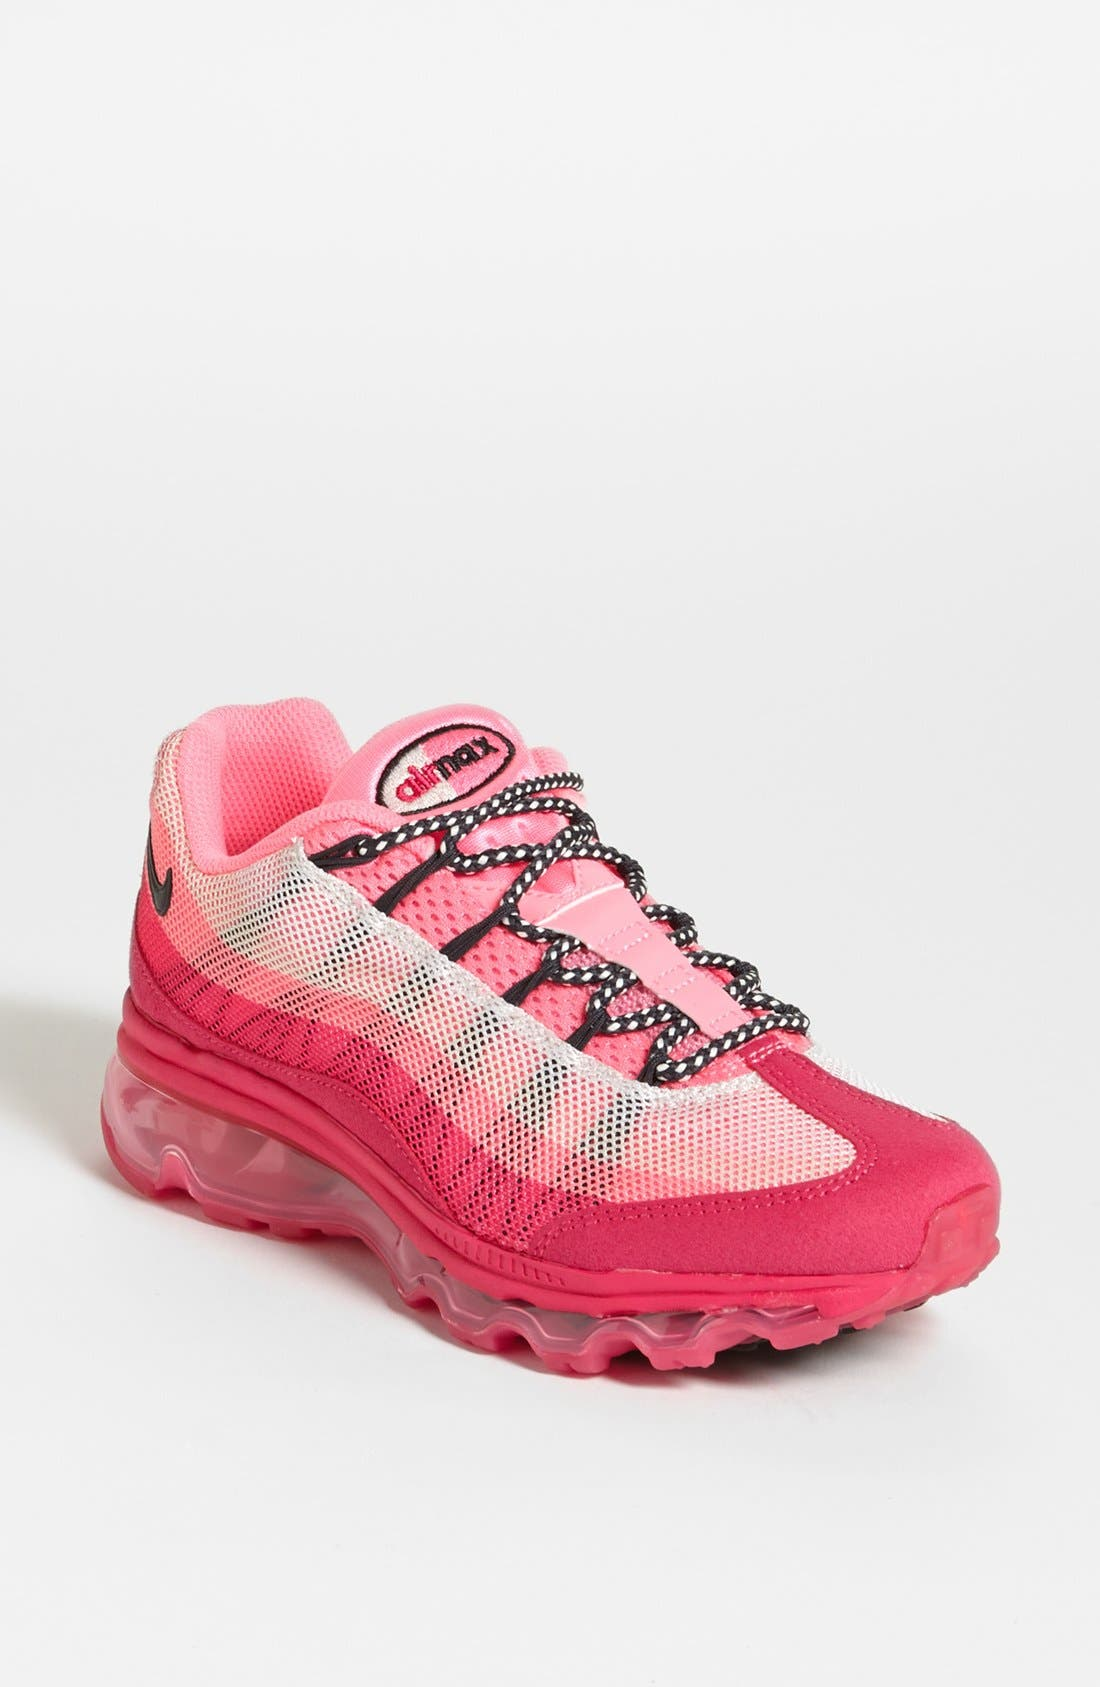 Main Image - Nike 'Air Max 95' Sneaker (Women)